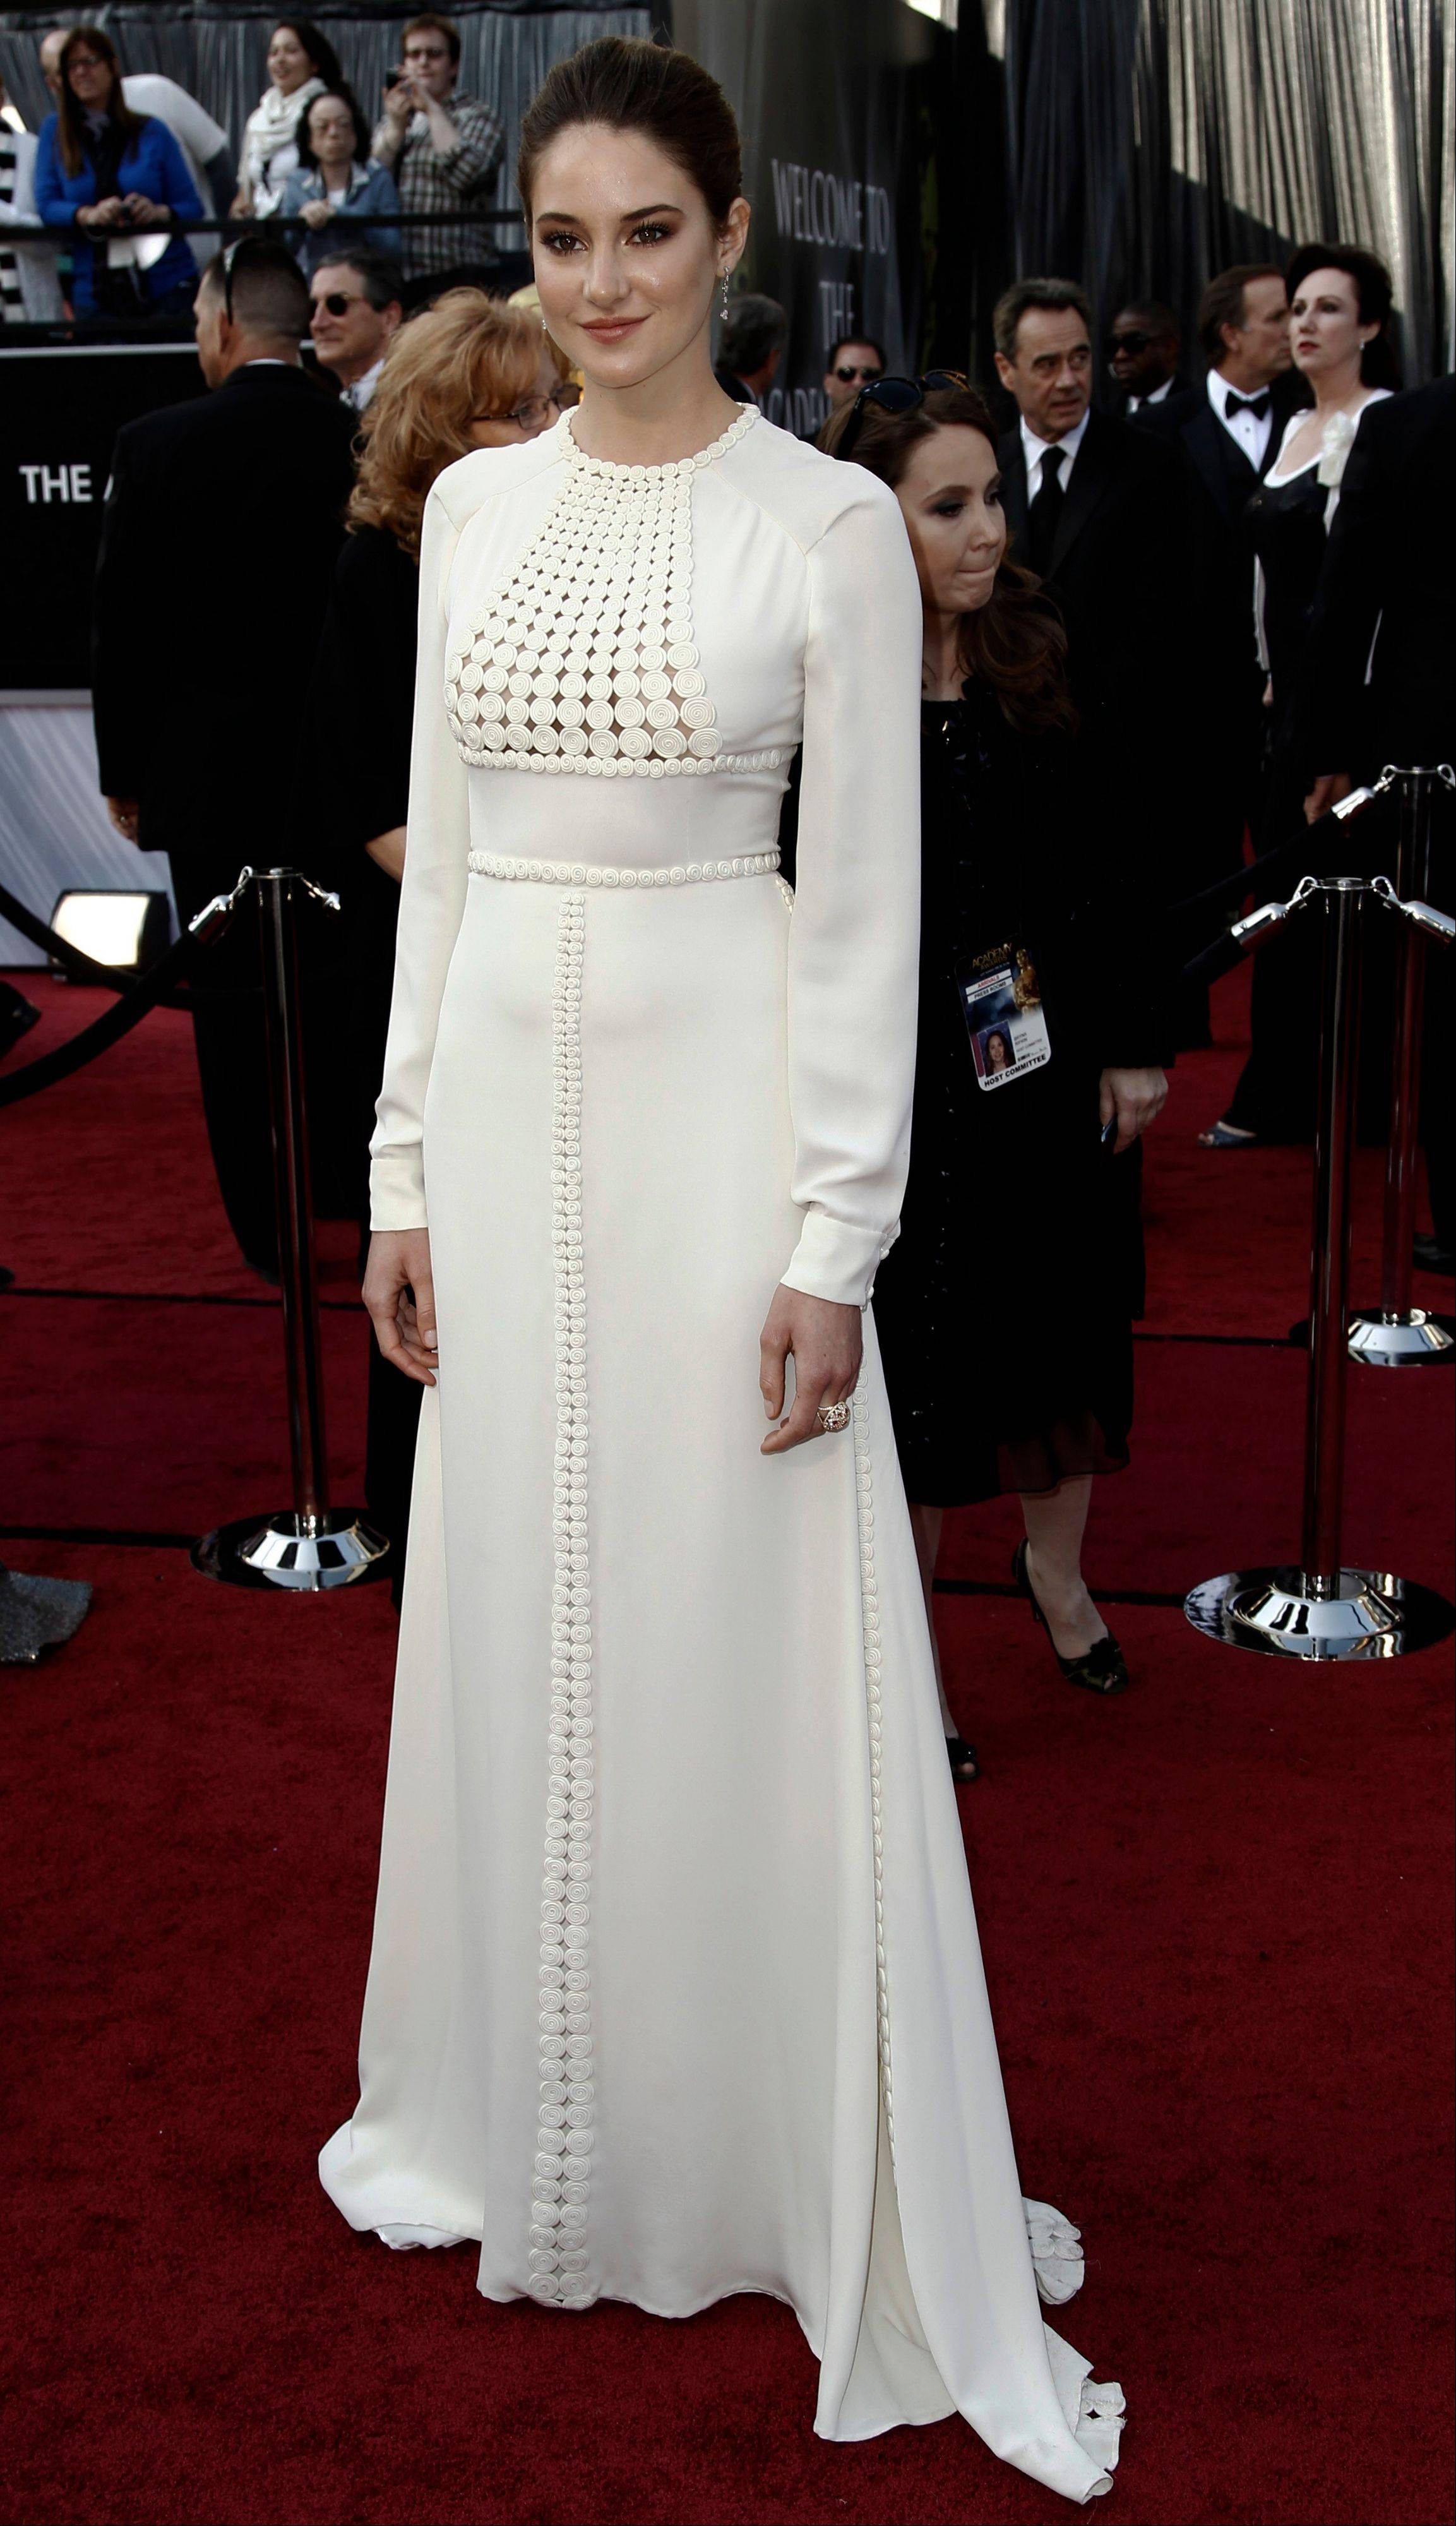 """Descendants"" actress Shailene Woodley wore Valentino Couture on the red carpet at the Academy Awards."